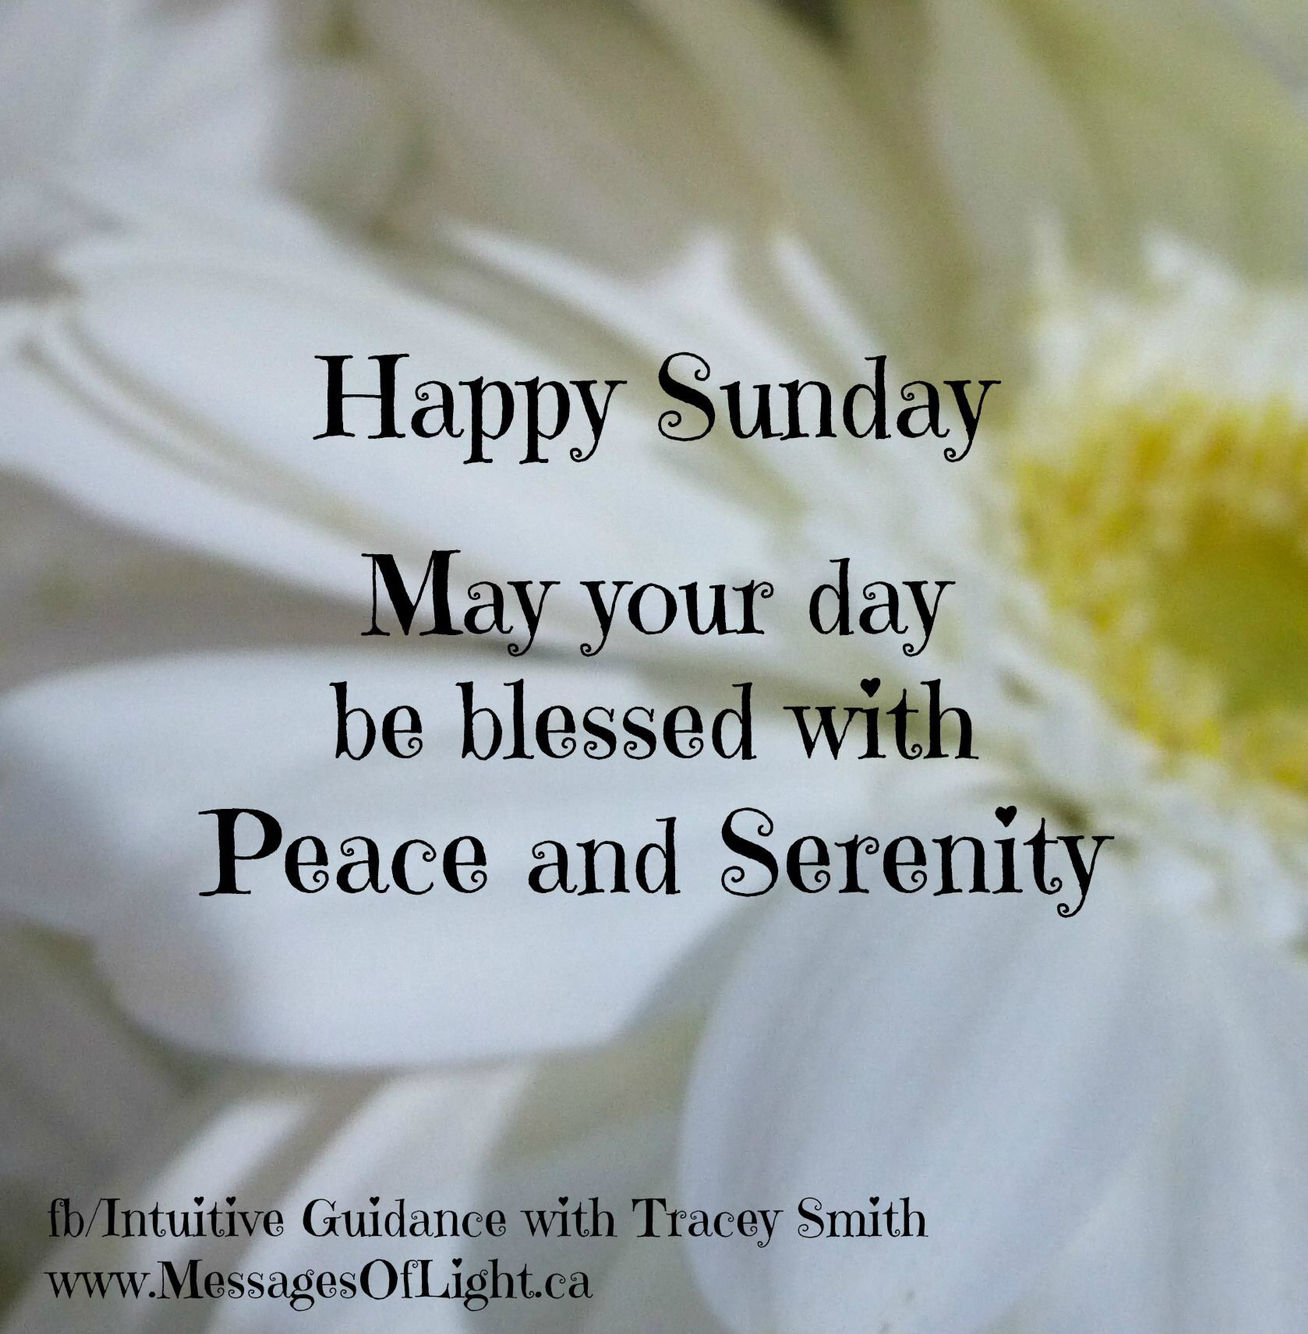 Happy Sunday Quotes Happy Sunday May Your Day Be Blessed Pictures, Photos, and Images  Happy Sunday Quotes